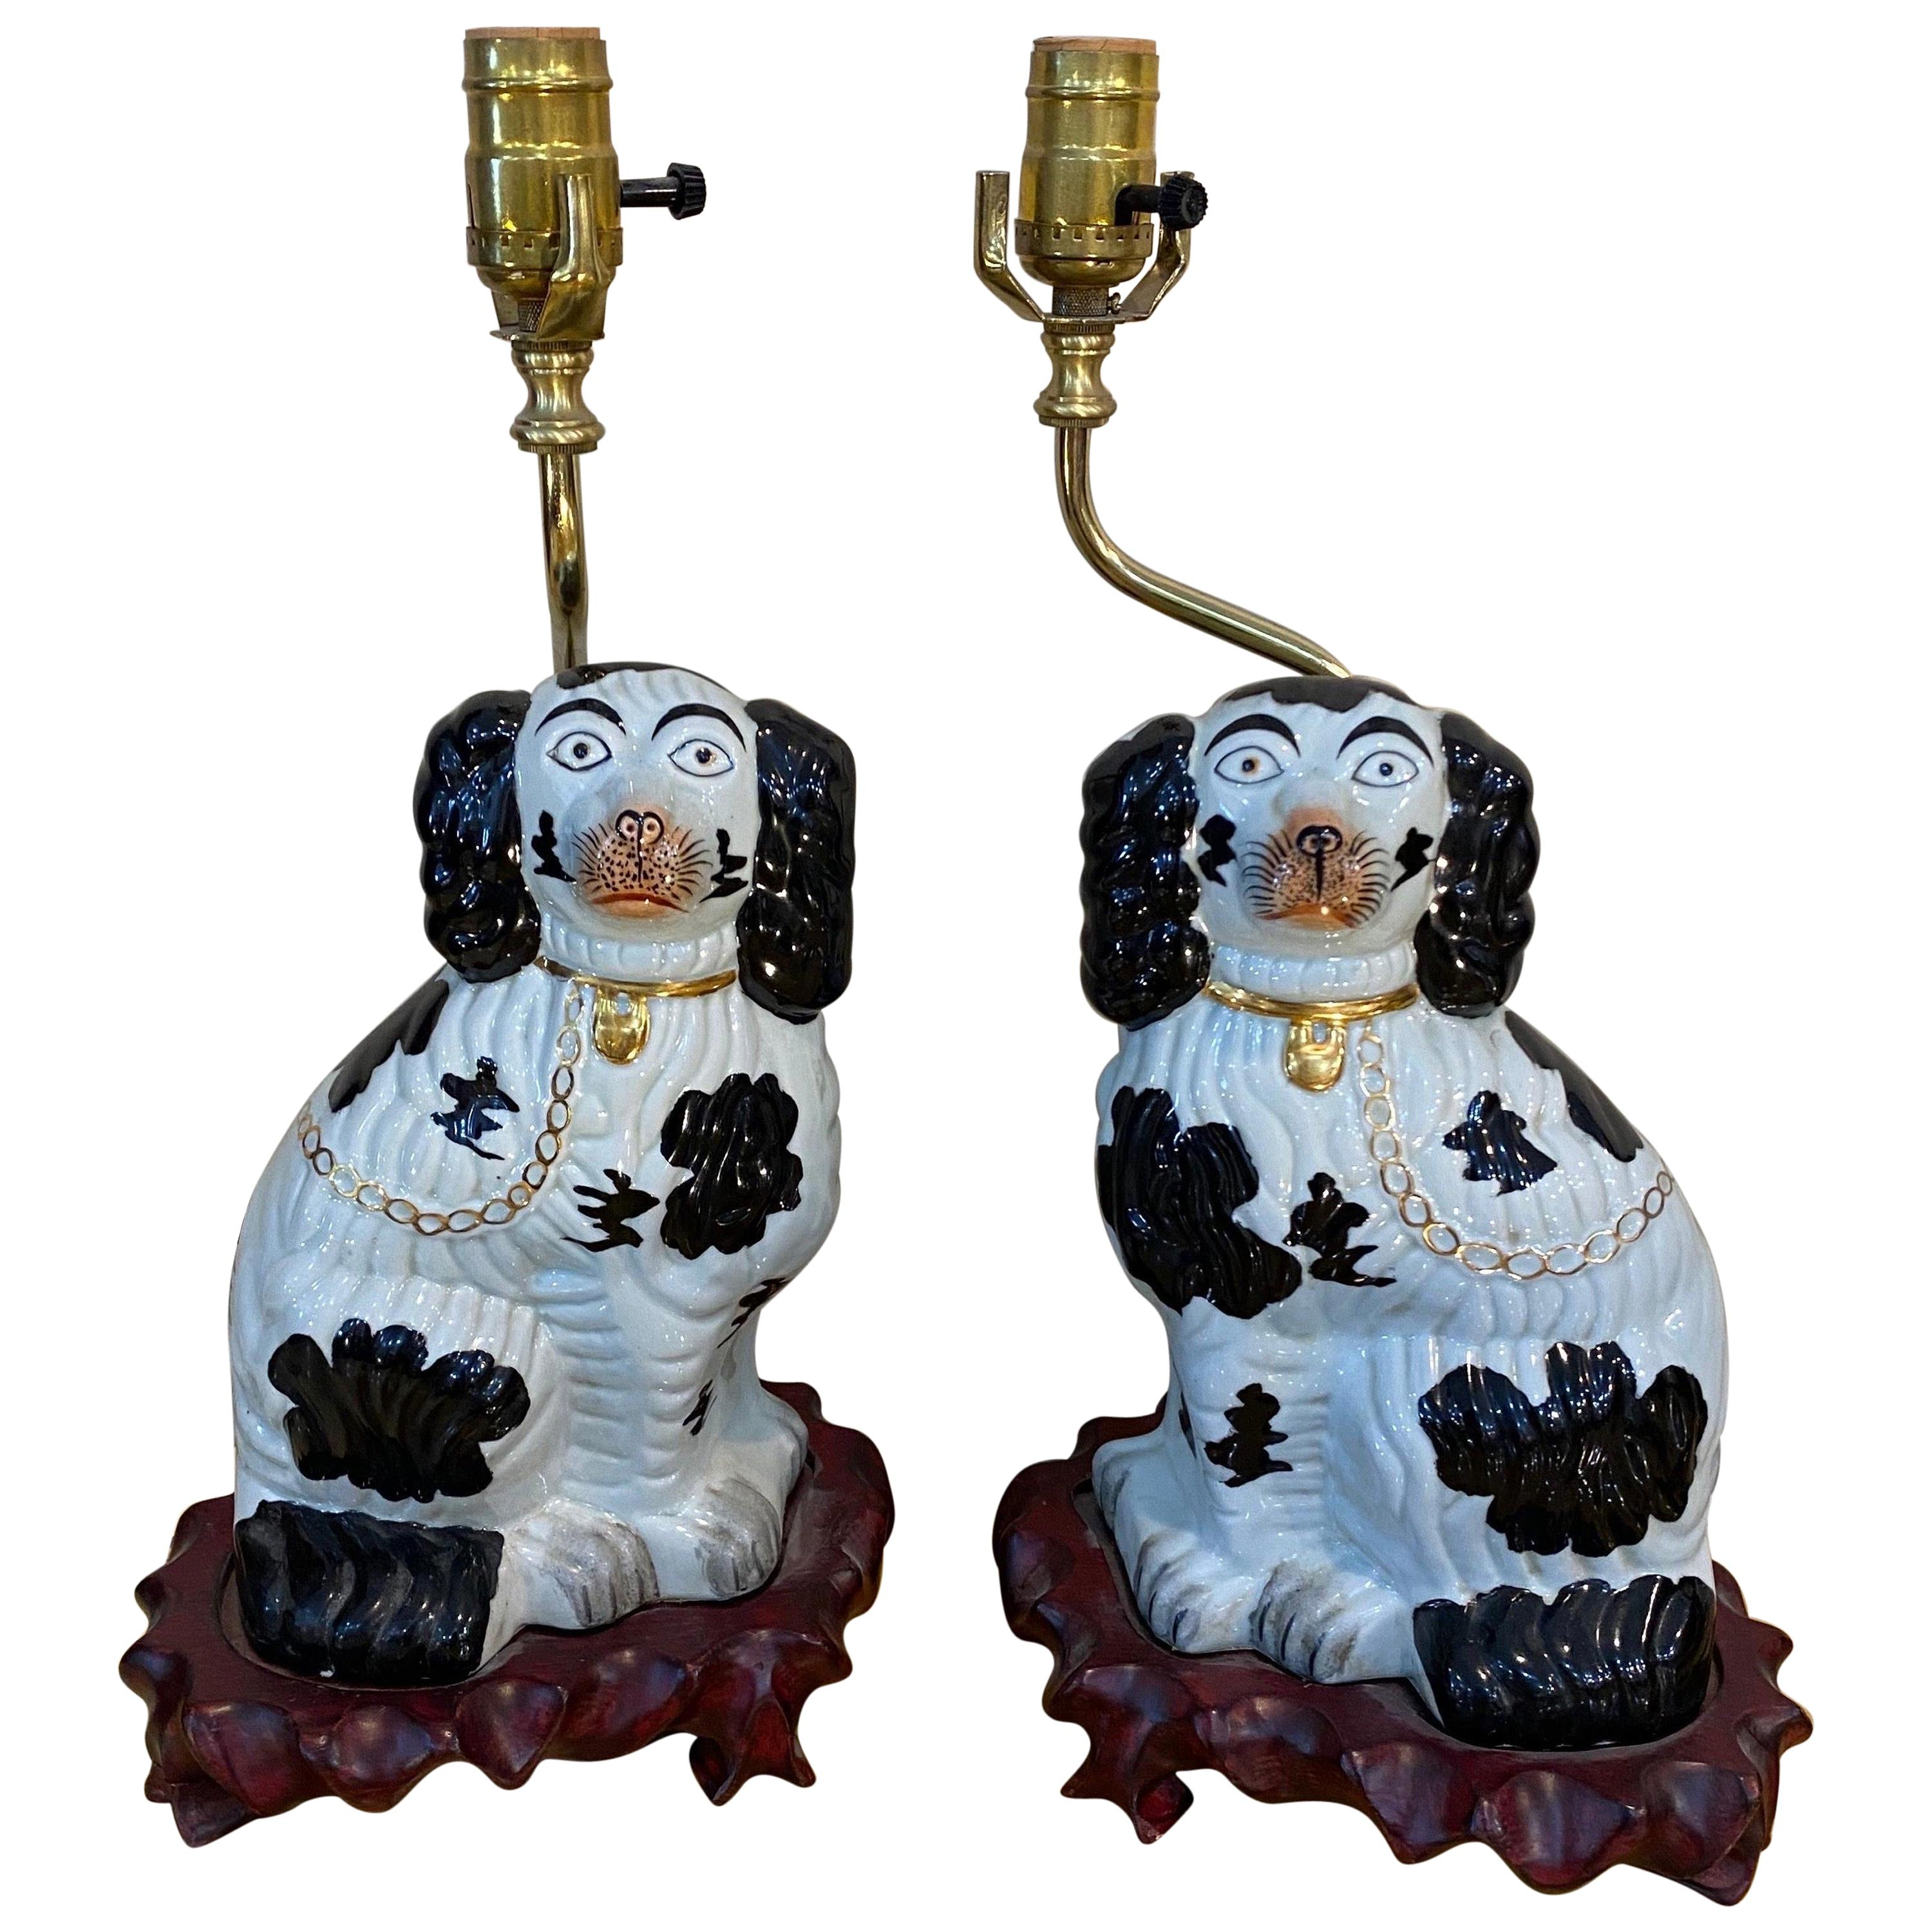 Pair of 19th Century Staffordshire Dogs mounted as Lamps